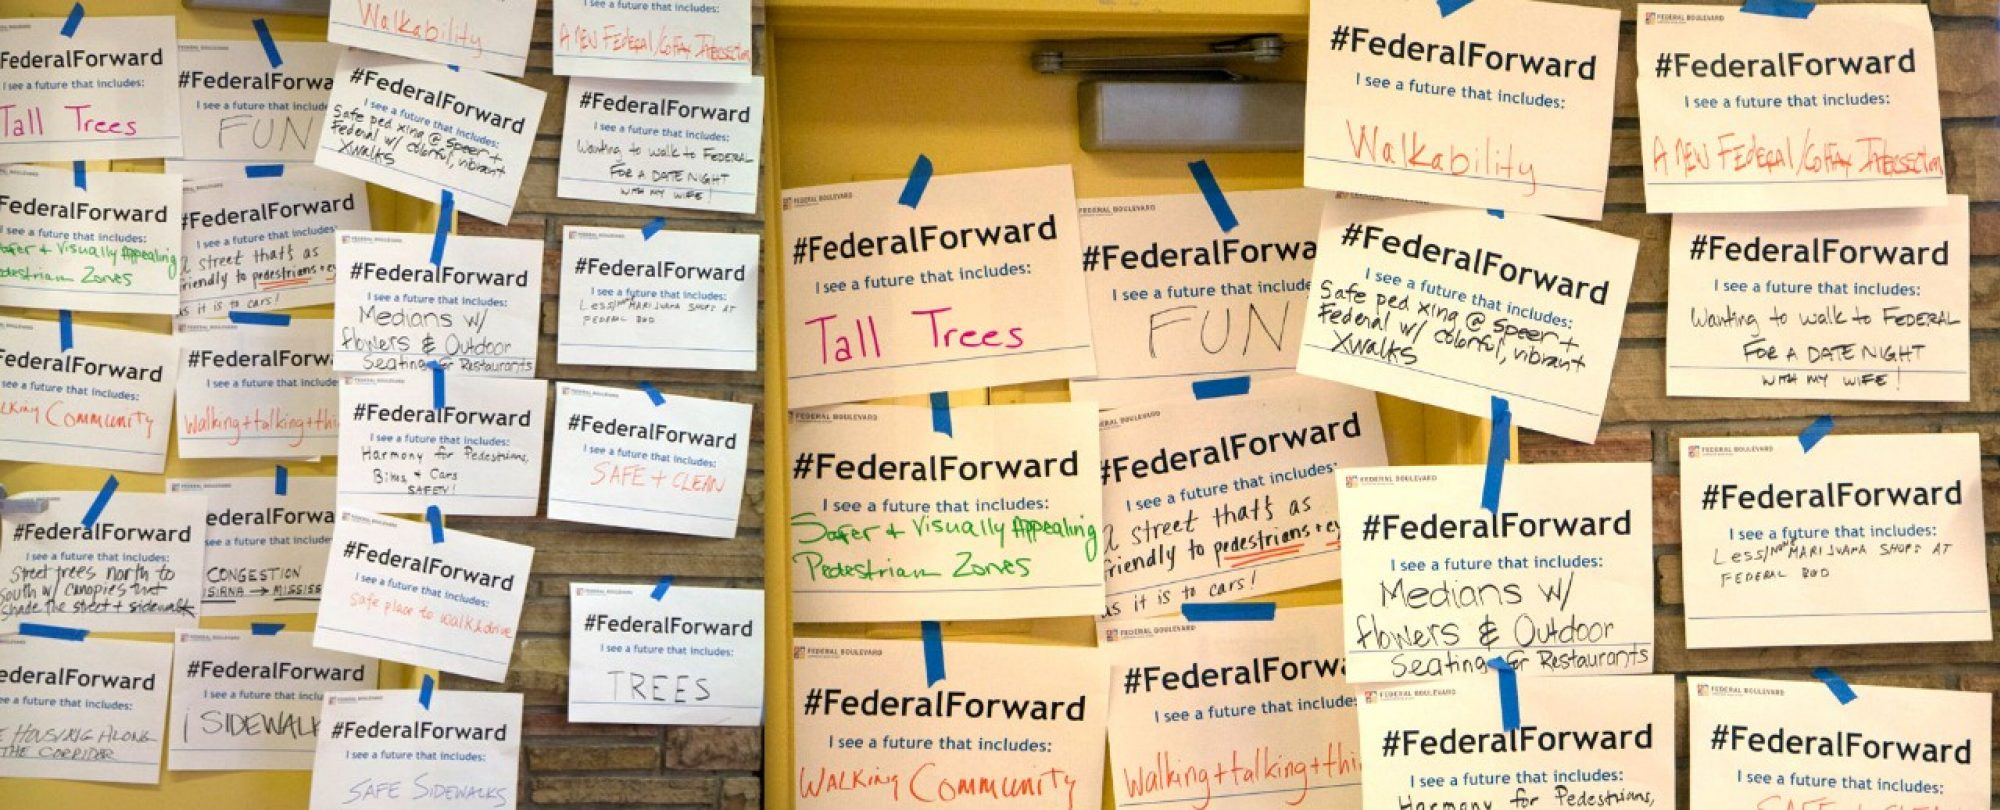 wall of #FederalForward signs for review